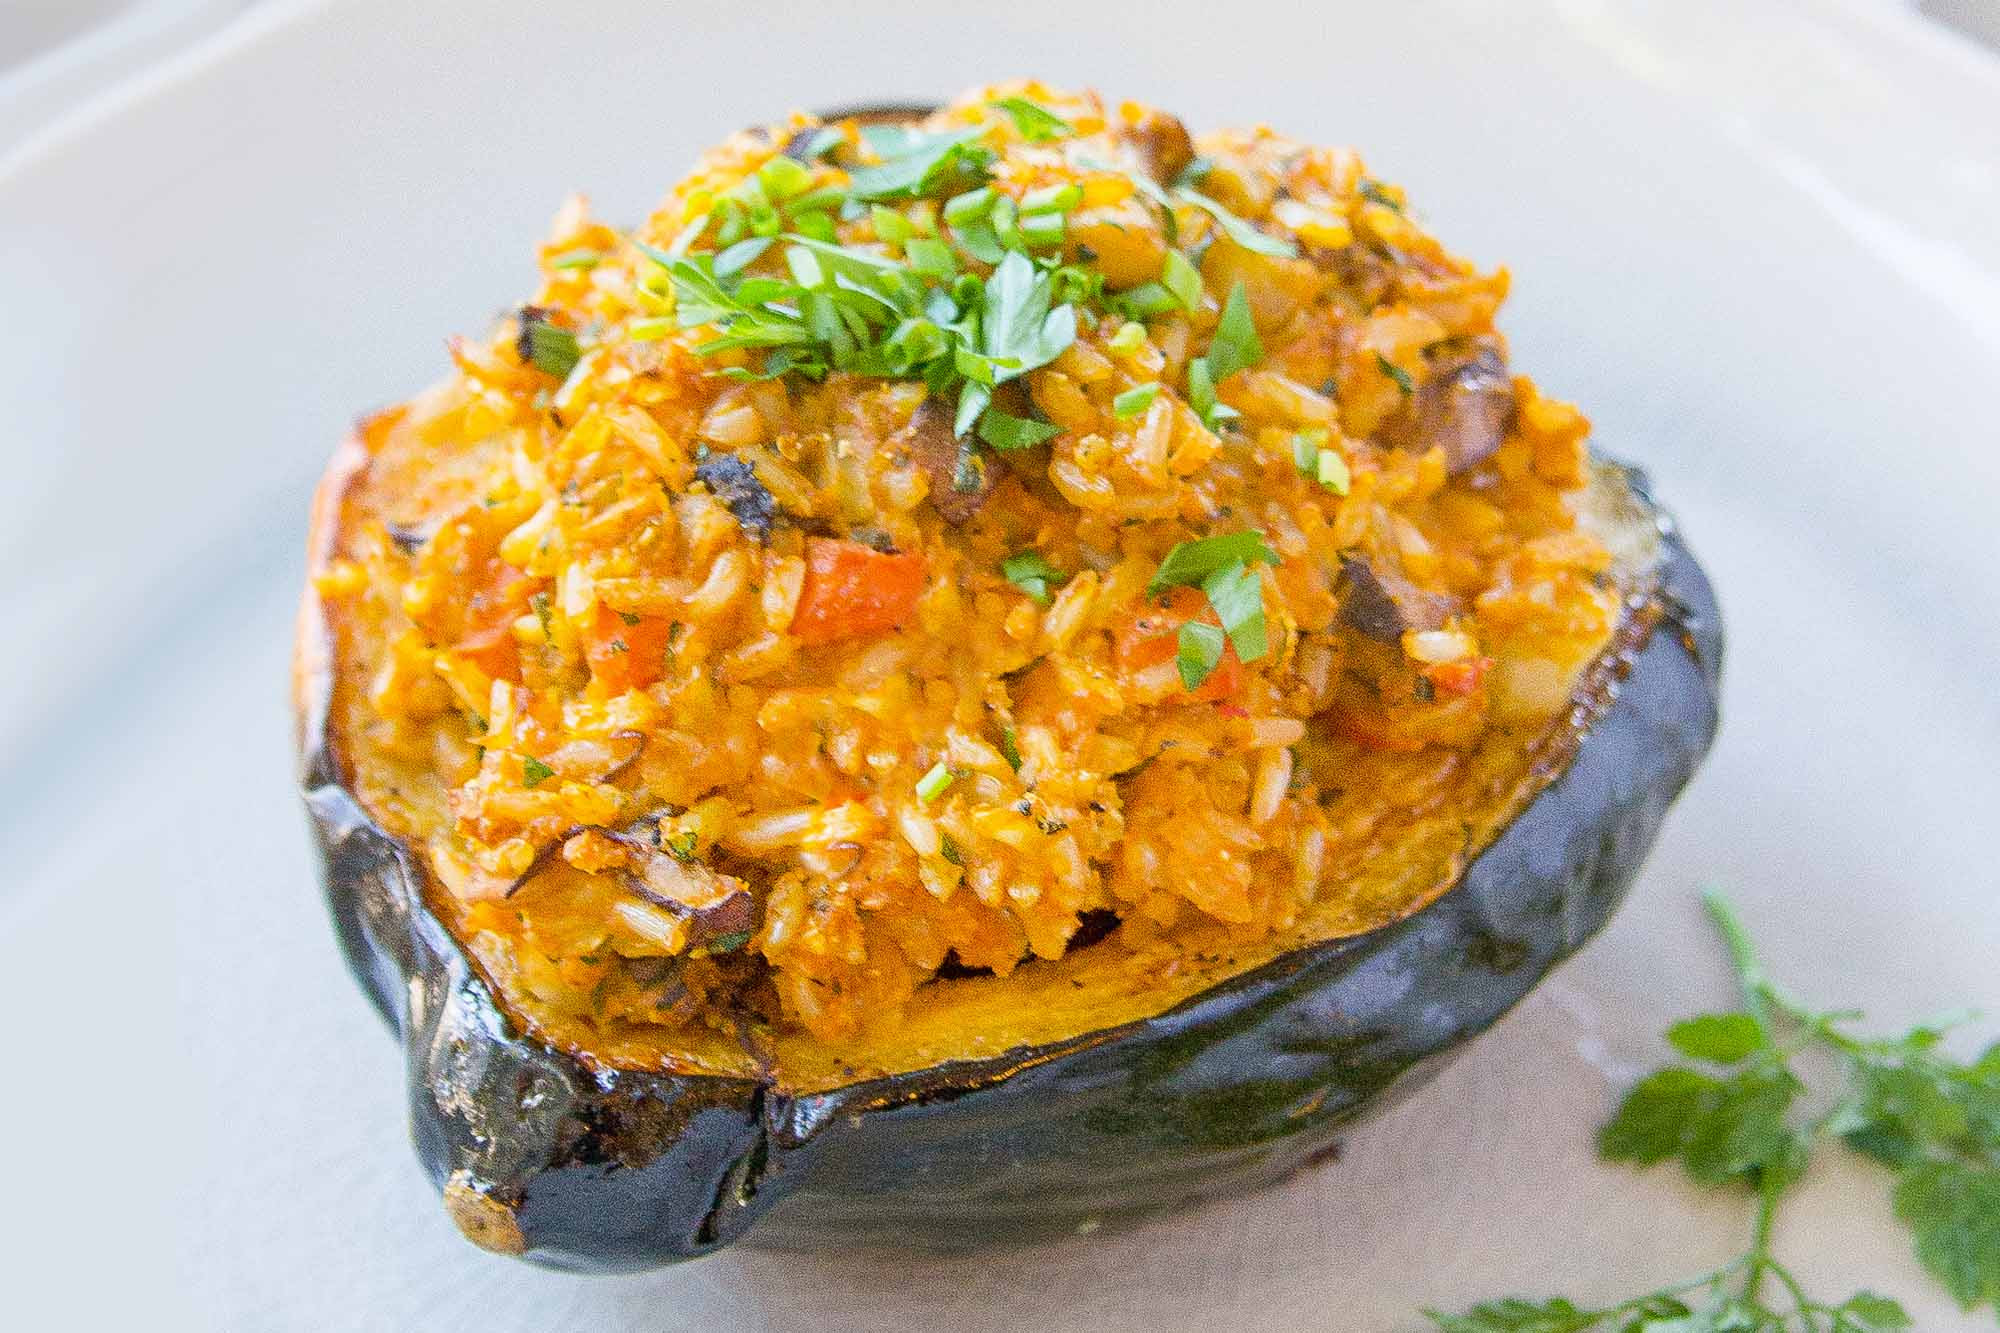 Vegan Summer Squash Recipes  Vegan Stuffed Squash with Brown Rice and Mushrooms Recipe